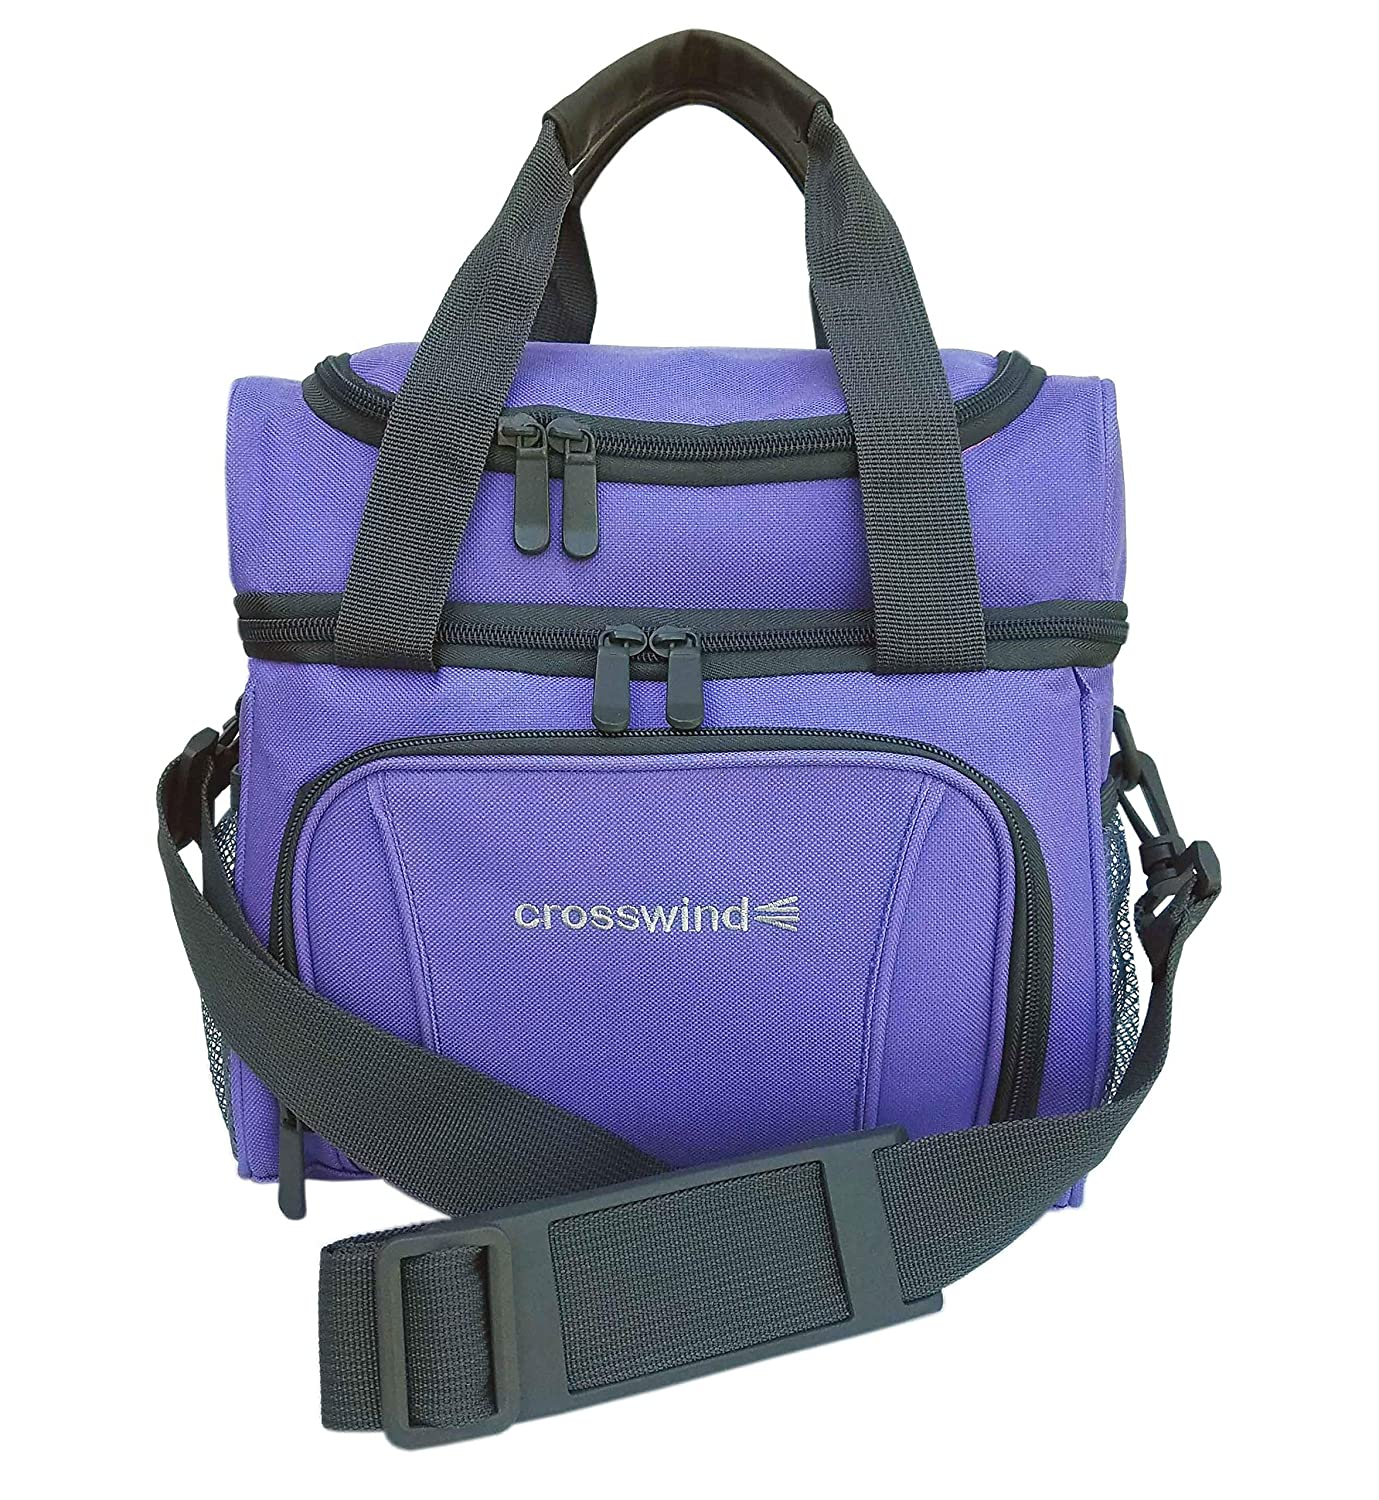 Soft Bag for Infant and Baby Bottles and Breast Milk Storage (Periwinkle) Crosswind